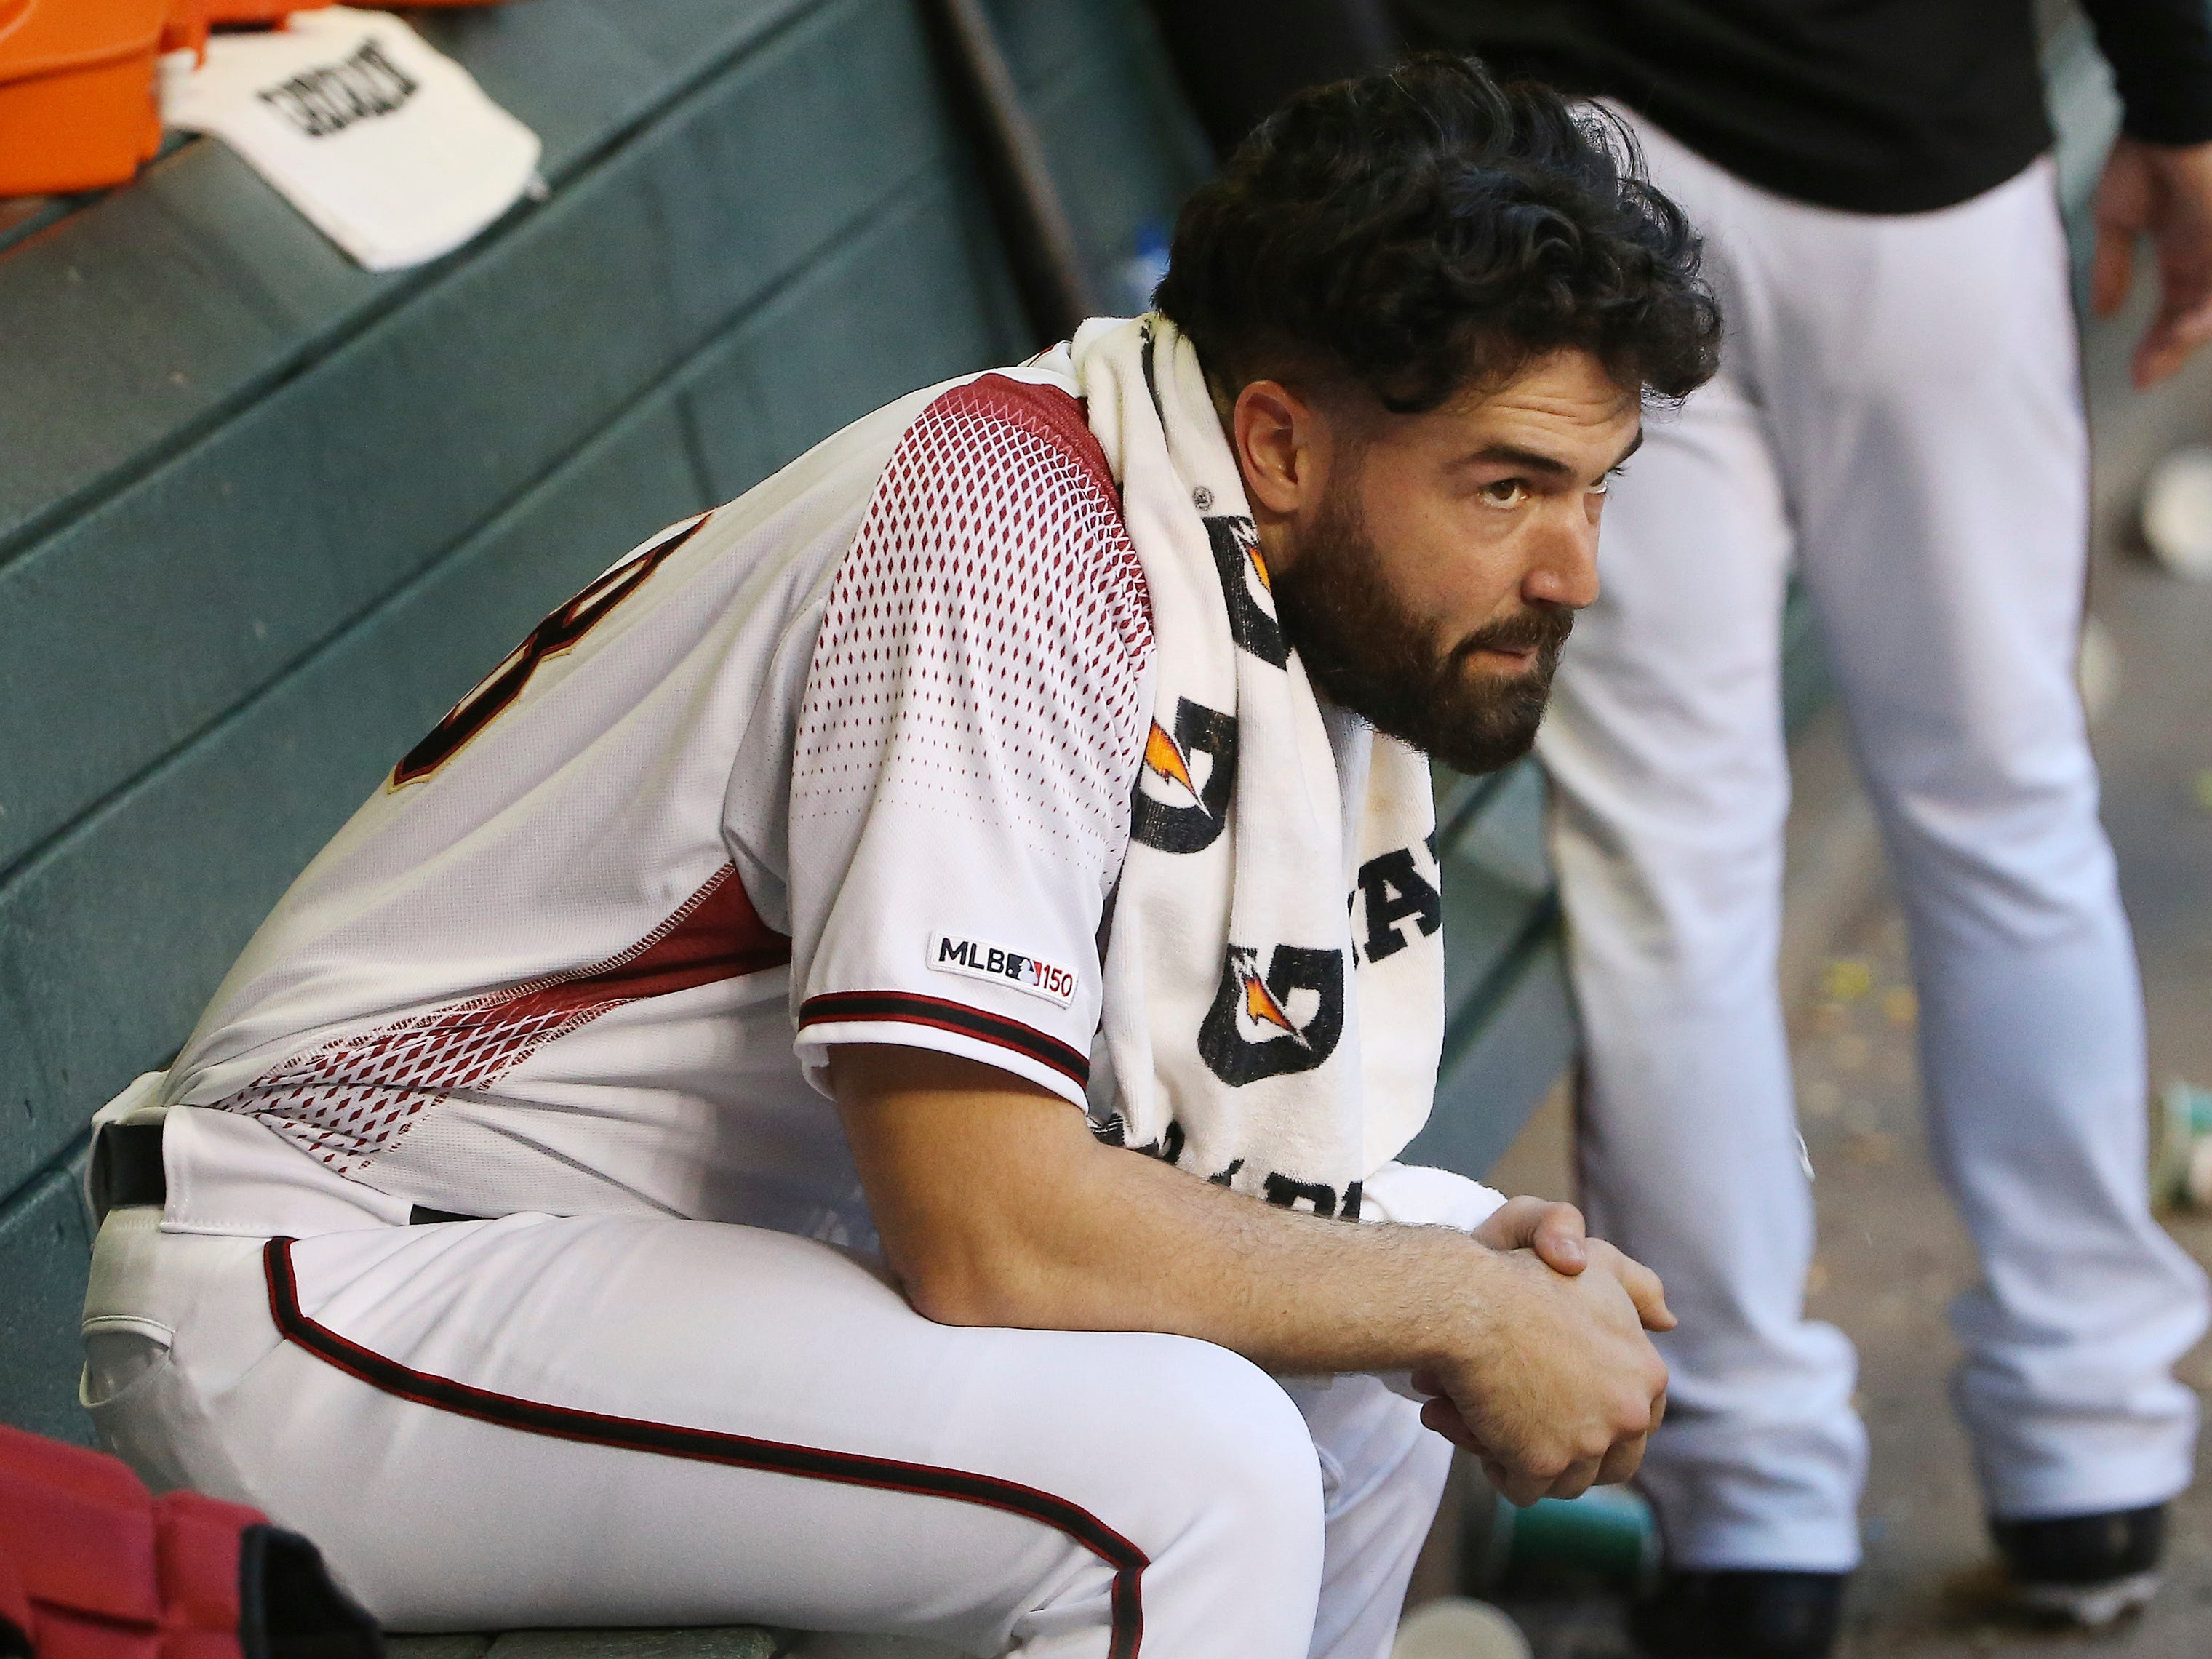 Arizona Diamondbacks starting pitcher Robbie Ray sits in the dugout after giving up two runs to the Pittsburgh Pirates during the first inning of a baseball game Monday, May 13, 2019, in Phoenix.